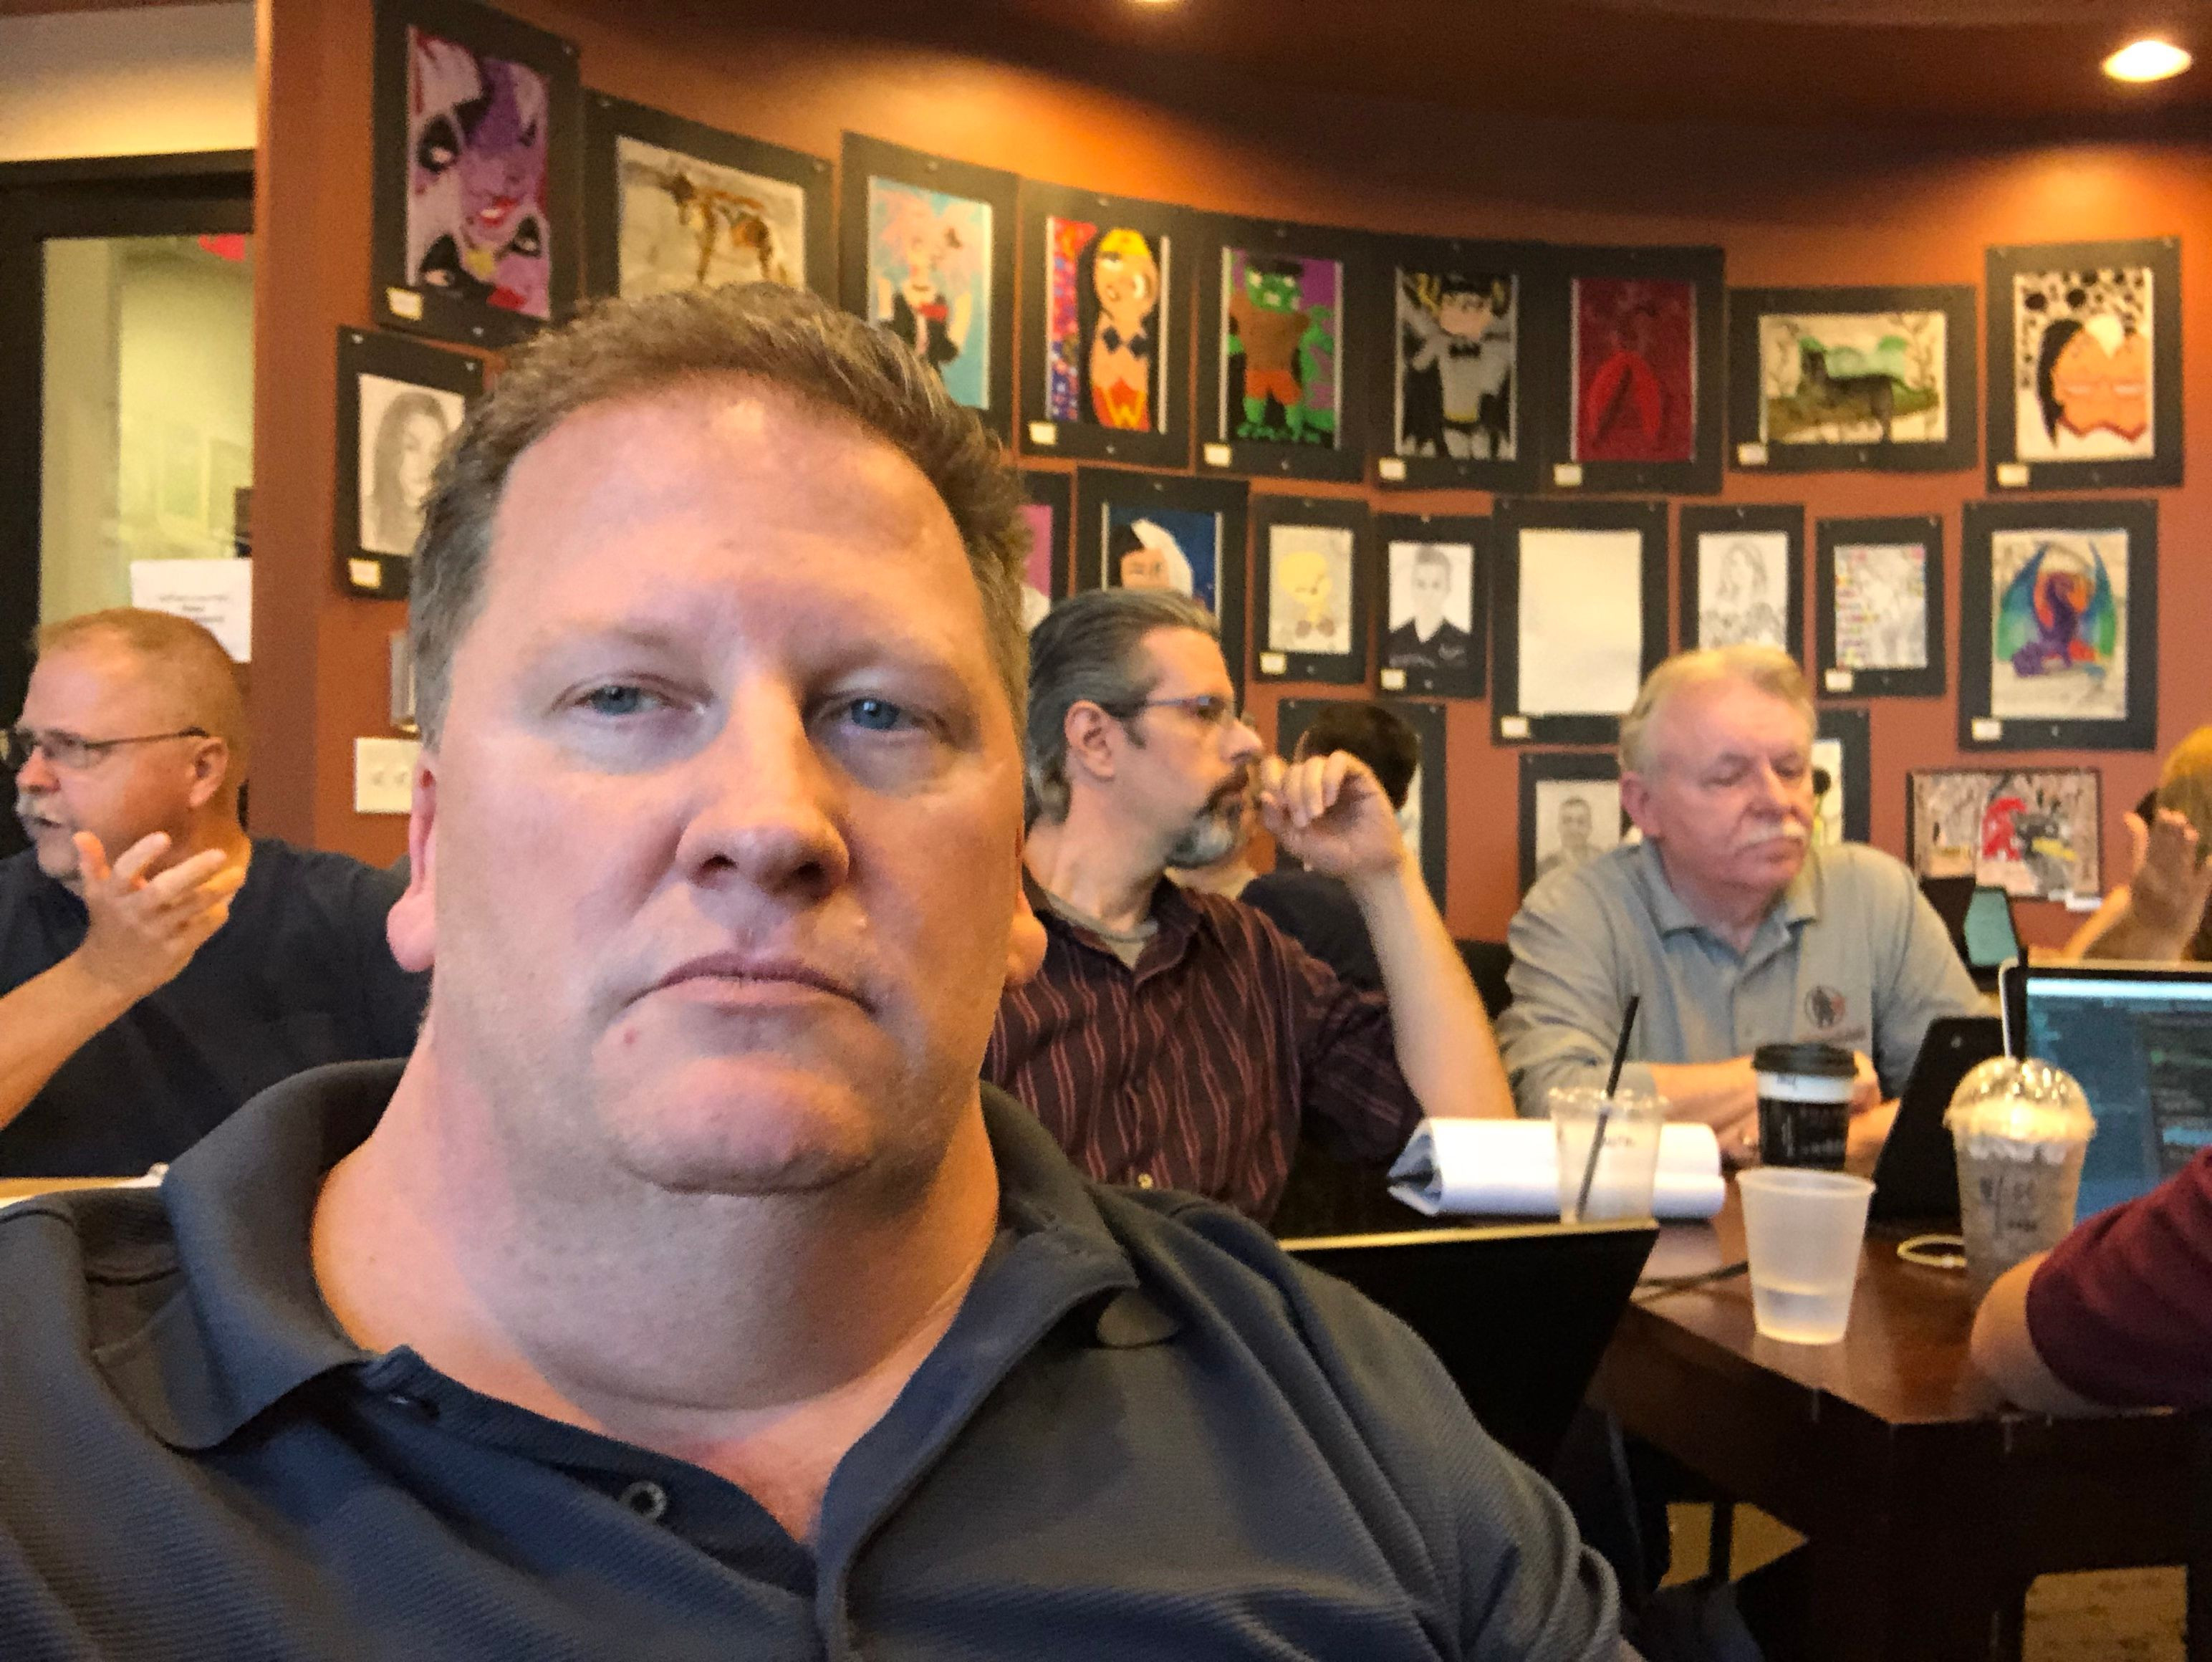 Northwest Valley - Arizona WordPress Group - 27 March 2018